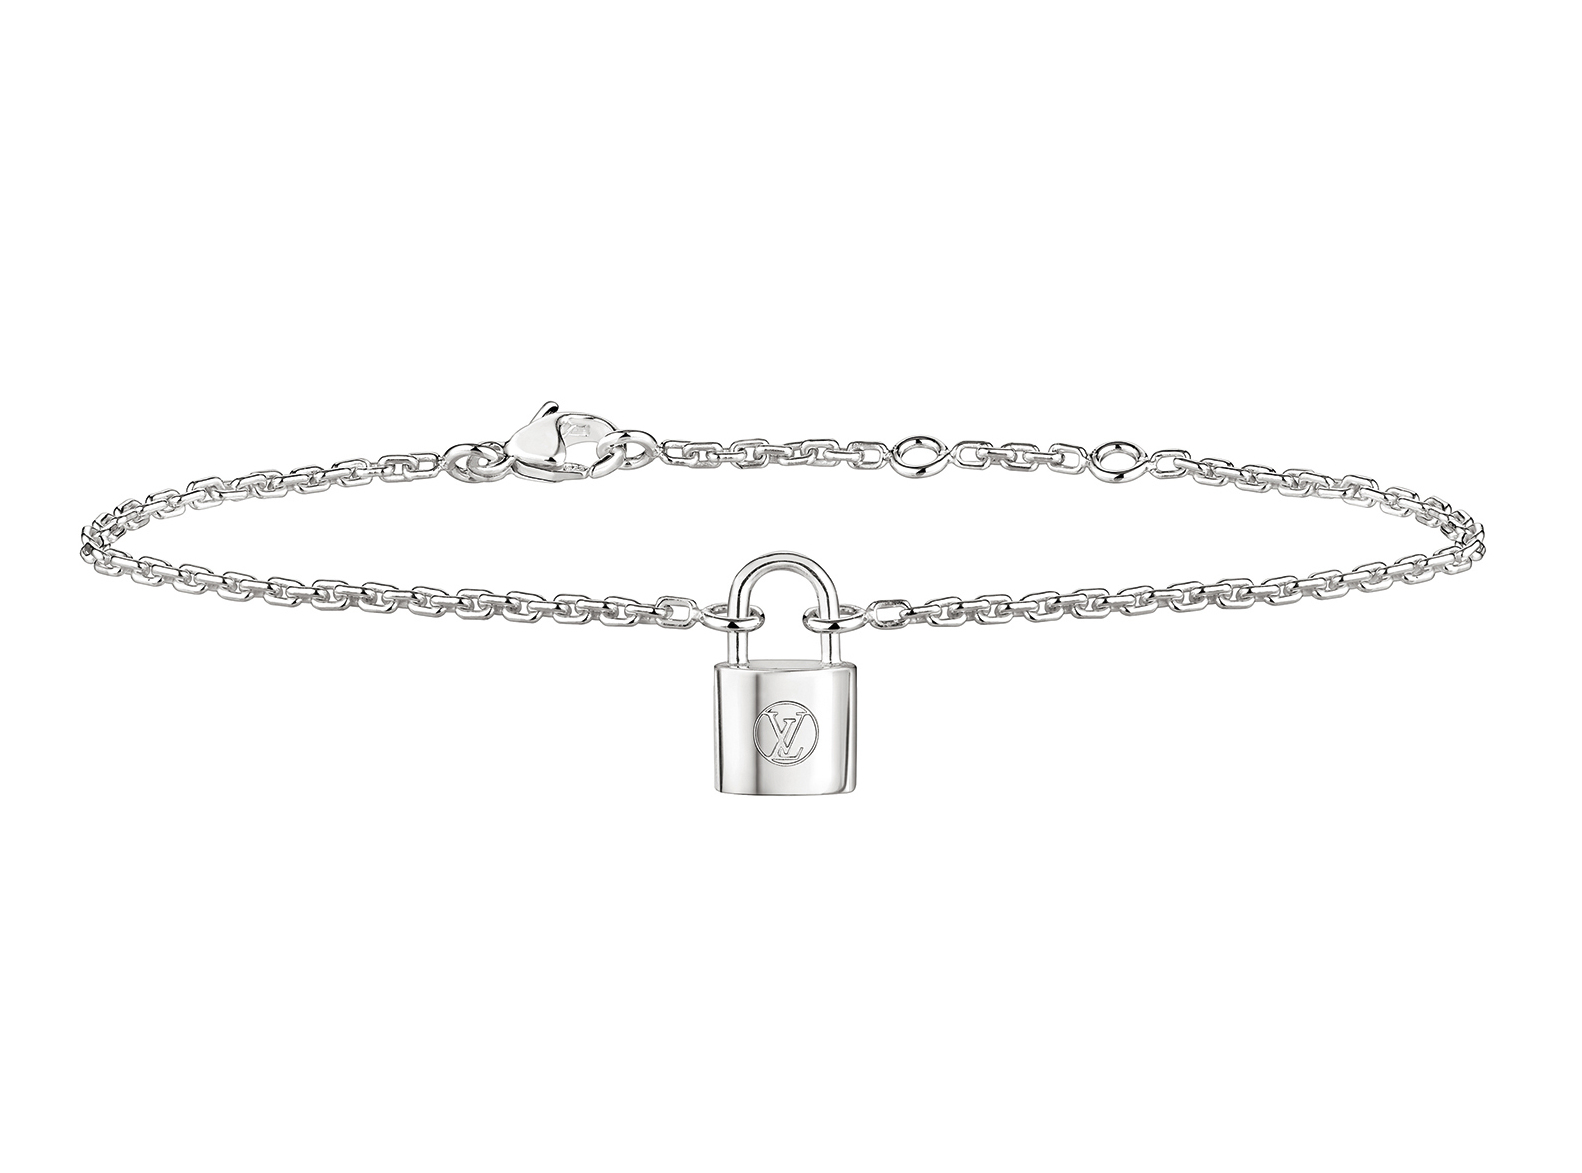 Louis Vuitton Lockit Pendant And Bracelet For Unicef How To Spend It